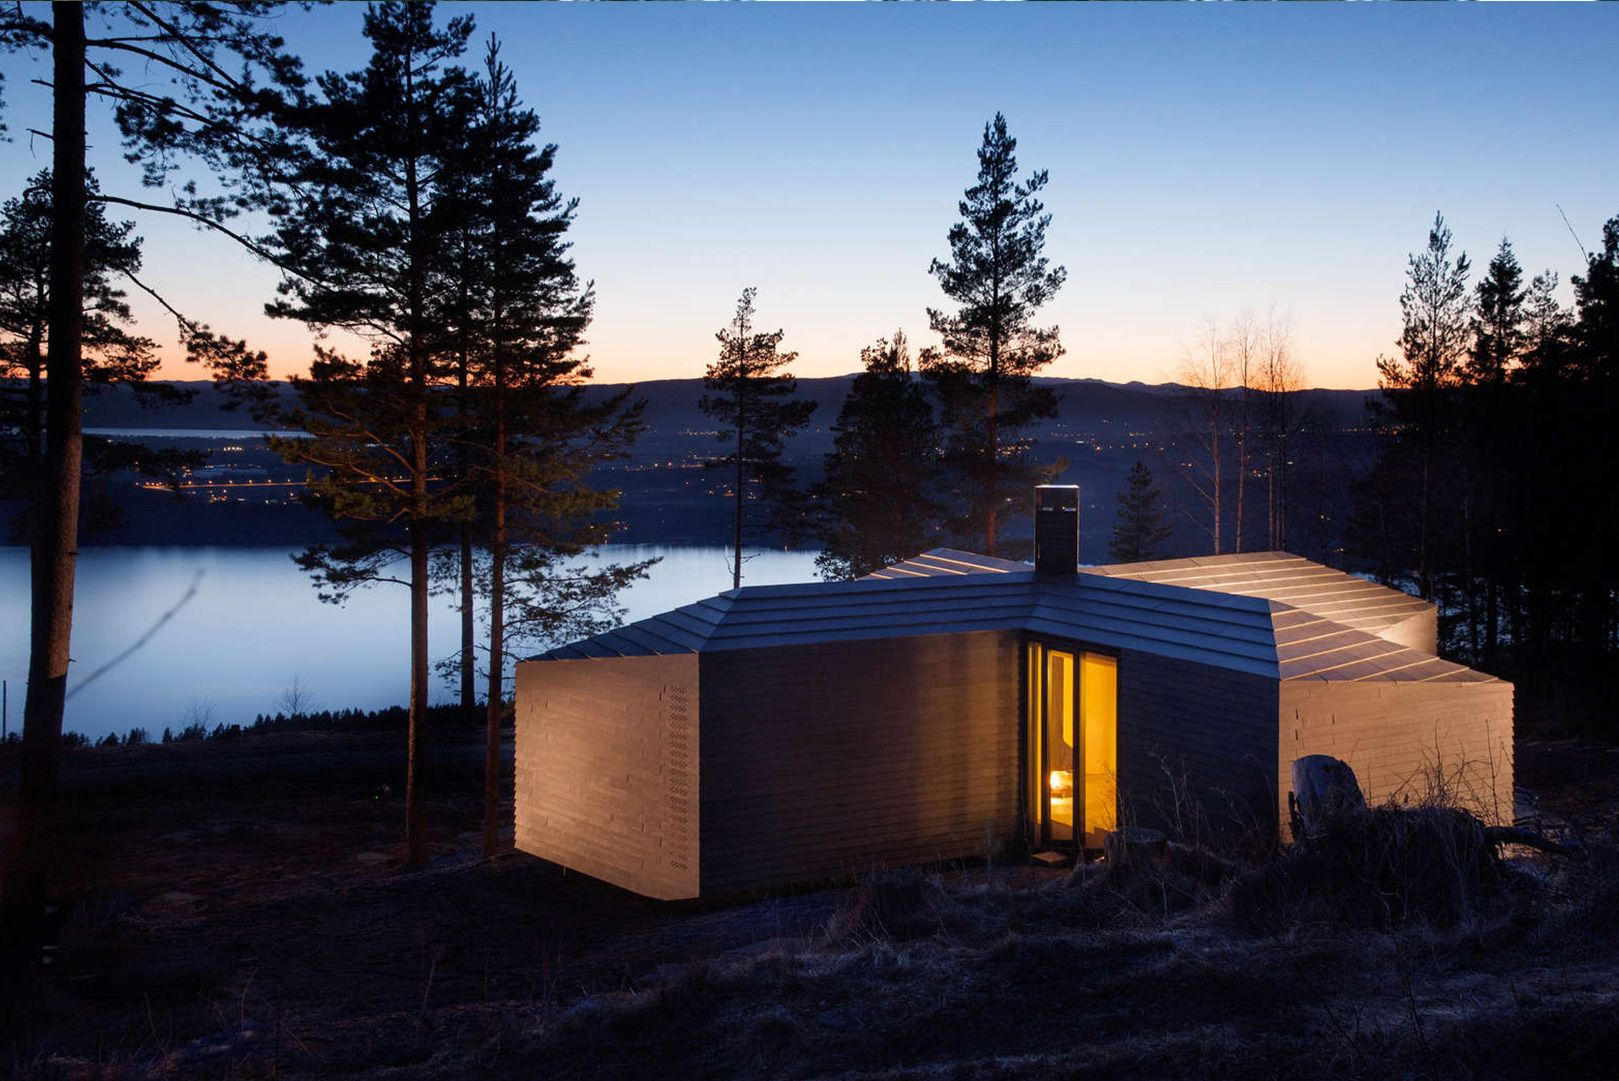 Contemporary Cabins Modern Contemporary Cabins In Norway Finland And America Tiny